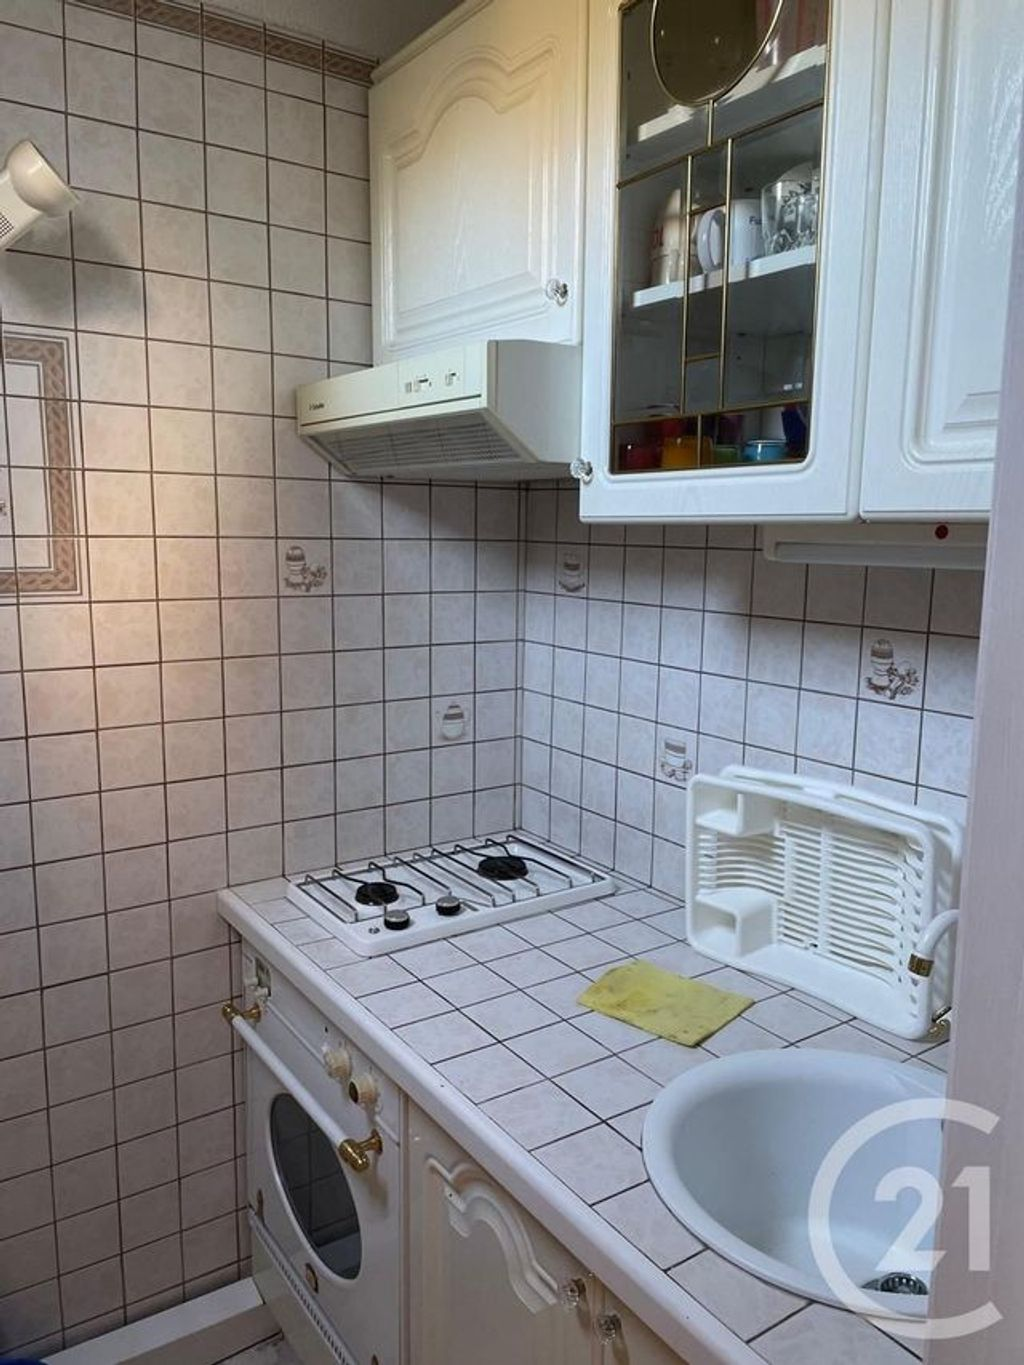 Achat appartement 2pièces 40m² - Avaray